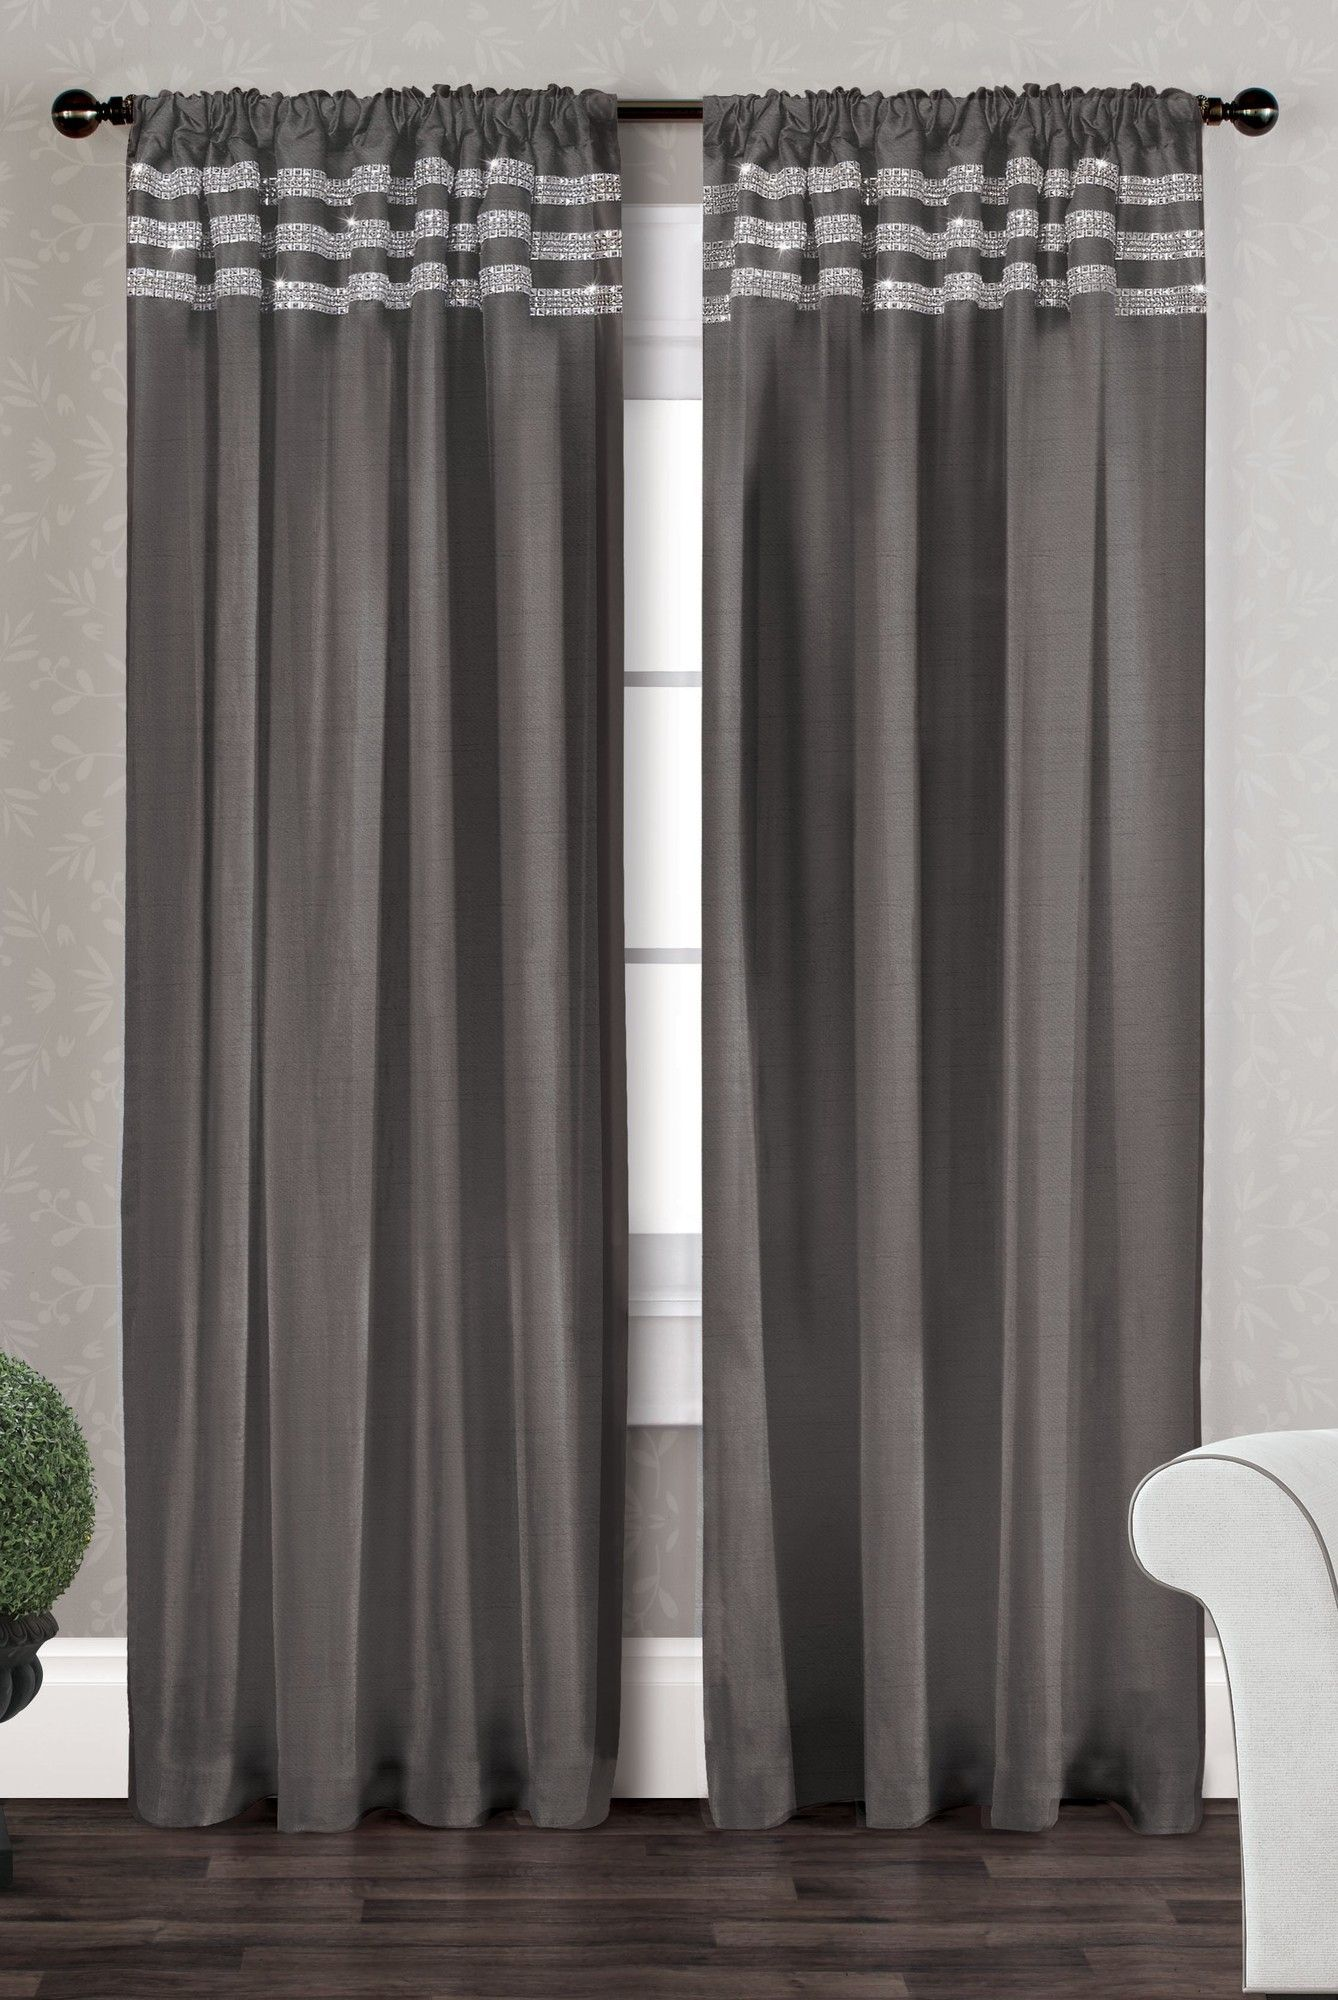 Bling Curtain Panel Panel Curtains Curtains Stylish Curtains